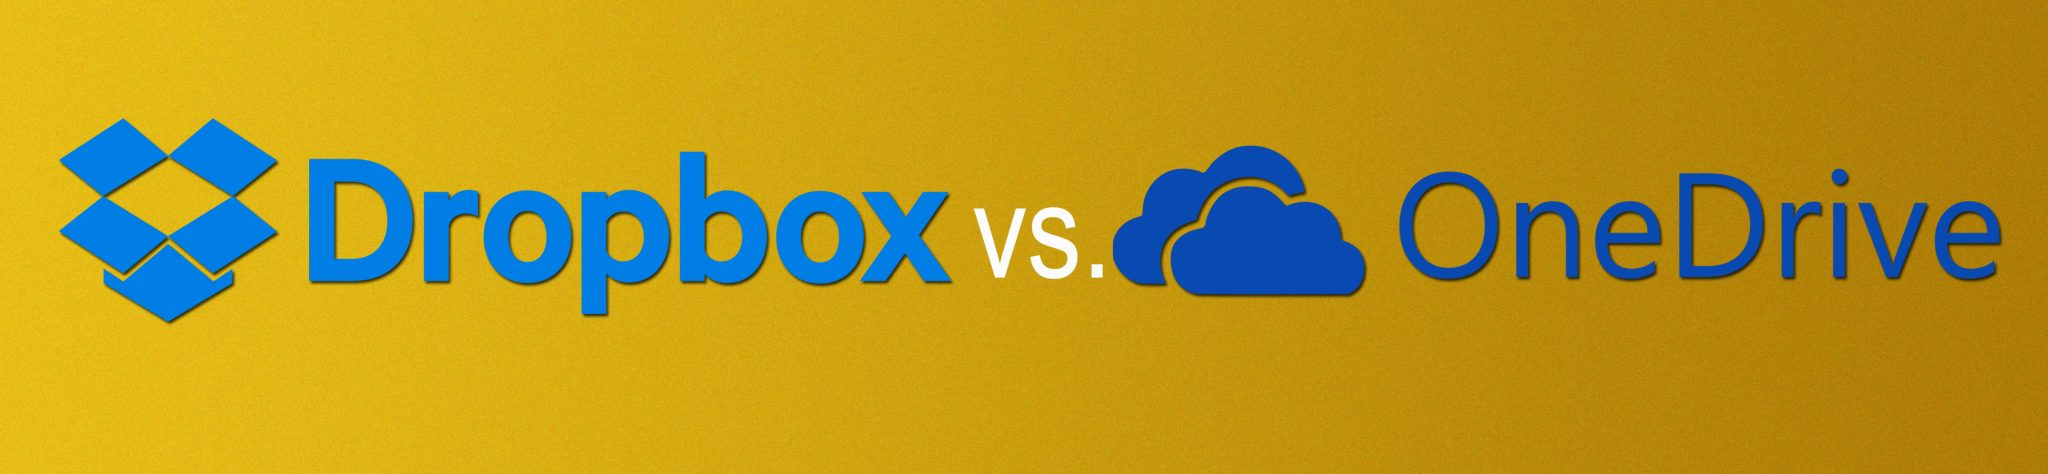 Dropbox or OneDrive: Which suits your business better?